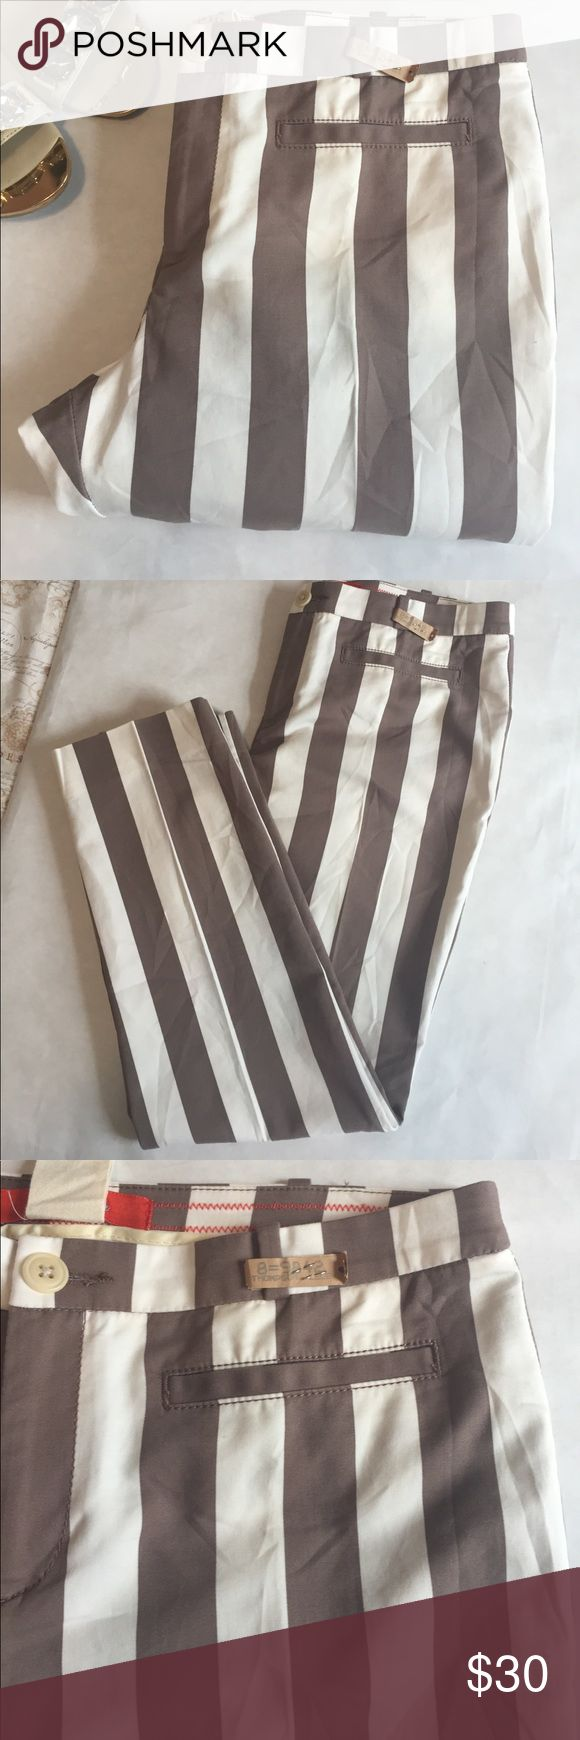 """Cartier Pants Cream and tan striped Cartier Pants from Anthropology. 16"""" waist. 26"""" inseam. Cotton/ Spandex. Leg tapers. Cropped. Just dry cleaned. EUC Anthropologie Pants Ankle & Cropped"""